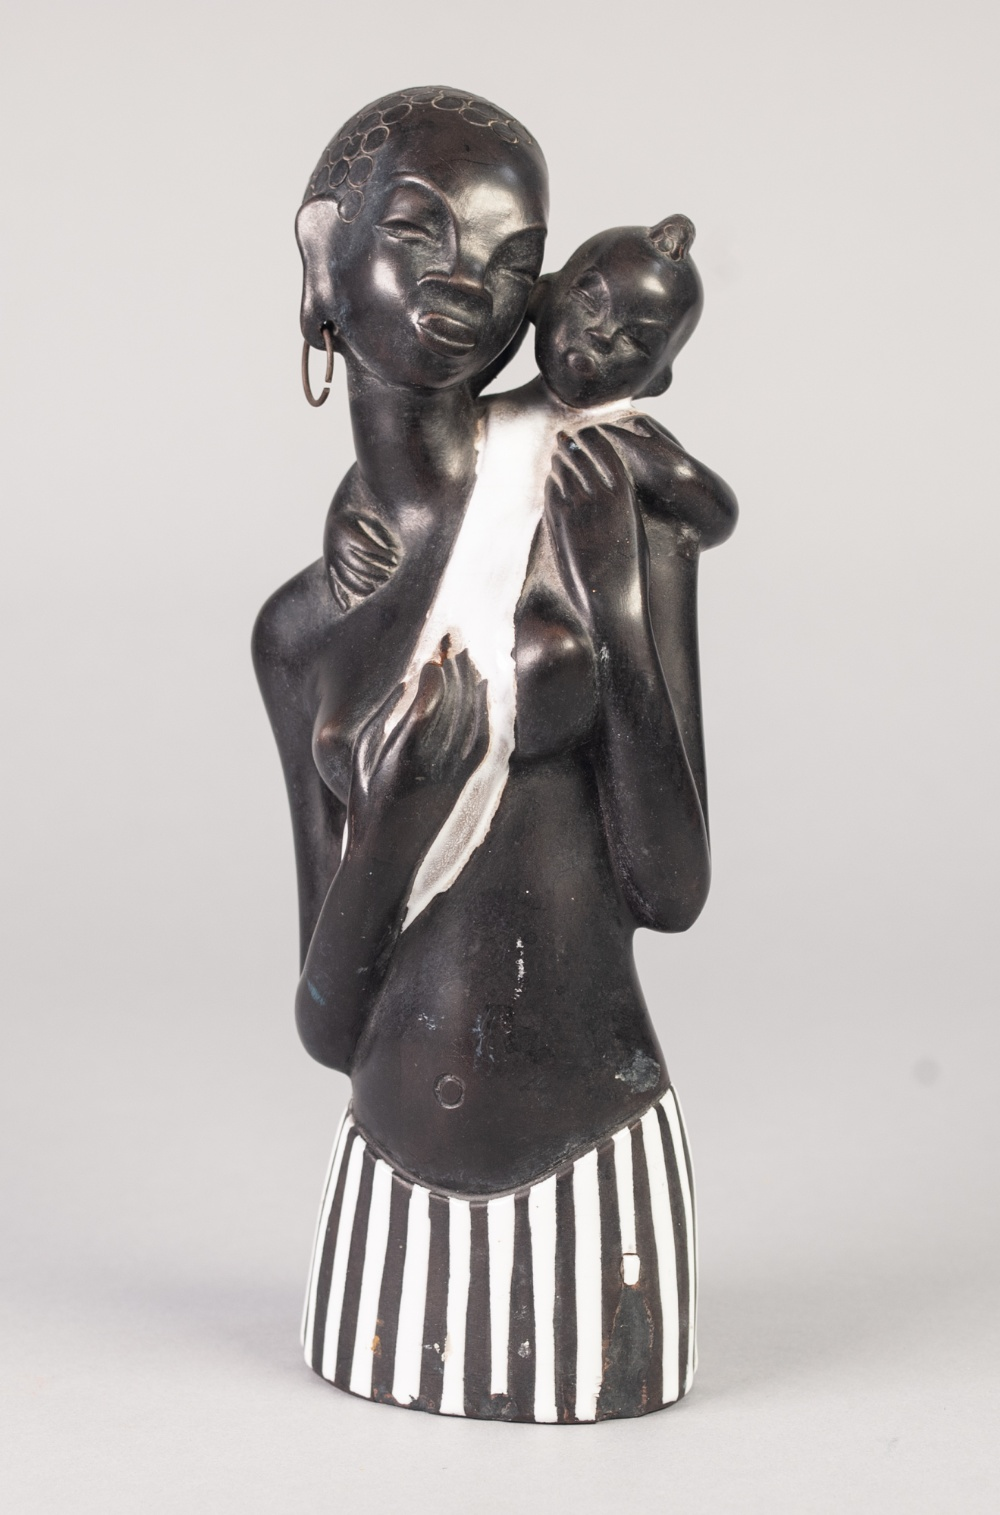 Lot 4 - EARLY TWENTIETH CENTURY 'HANDMADE IN AUSTRIA' BLACK GLAZED POTTERY GROUP OF AN AFRICAN MOTHER AND